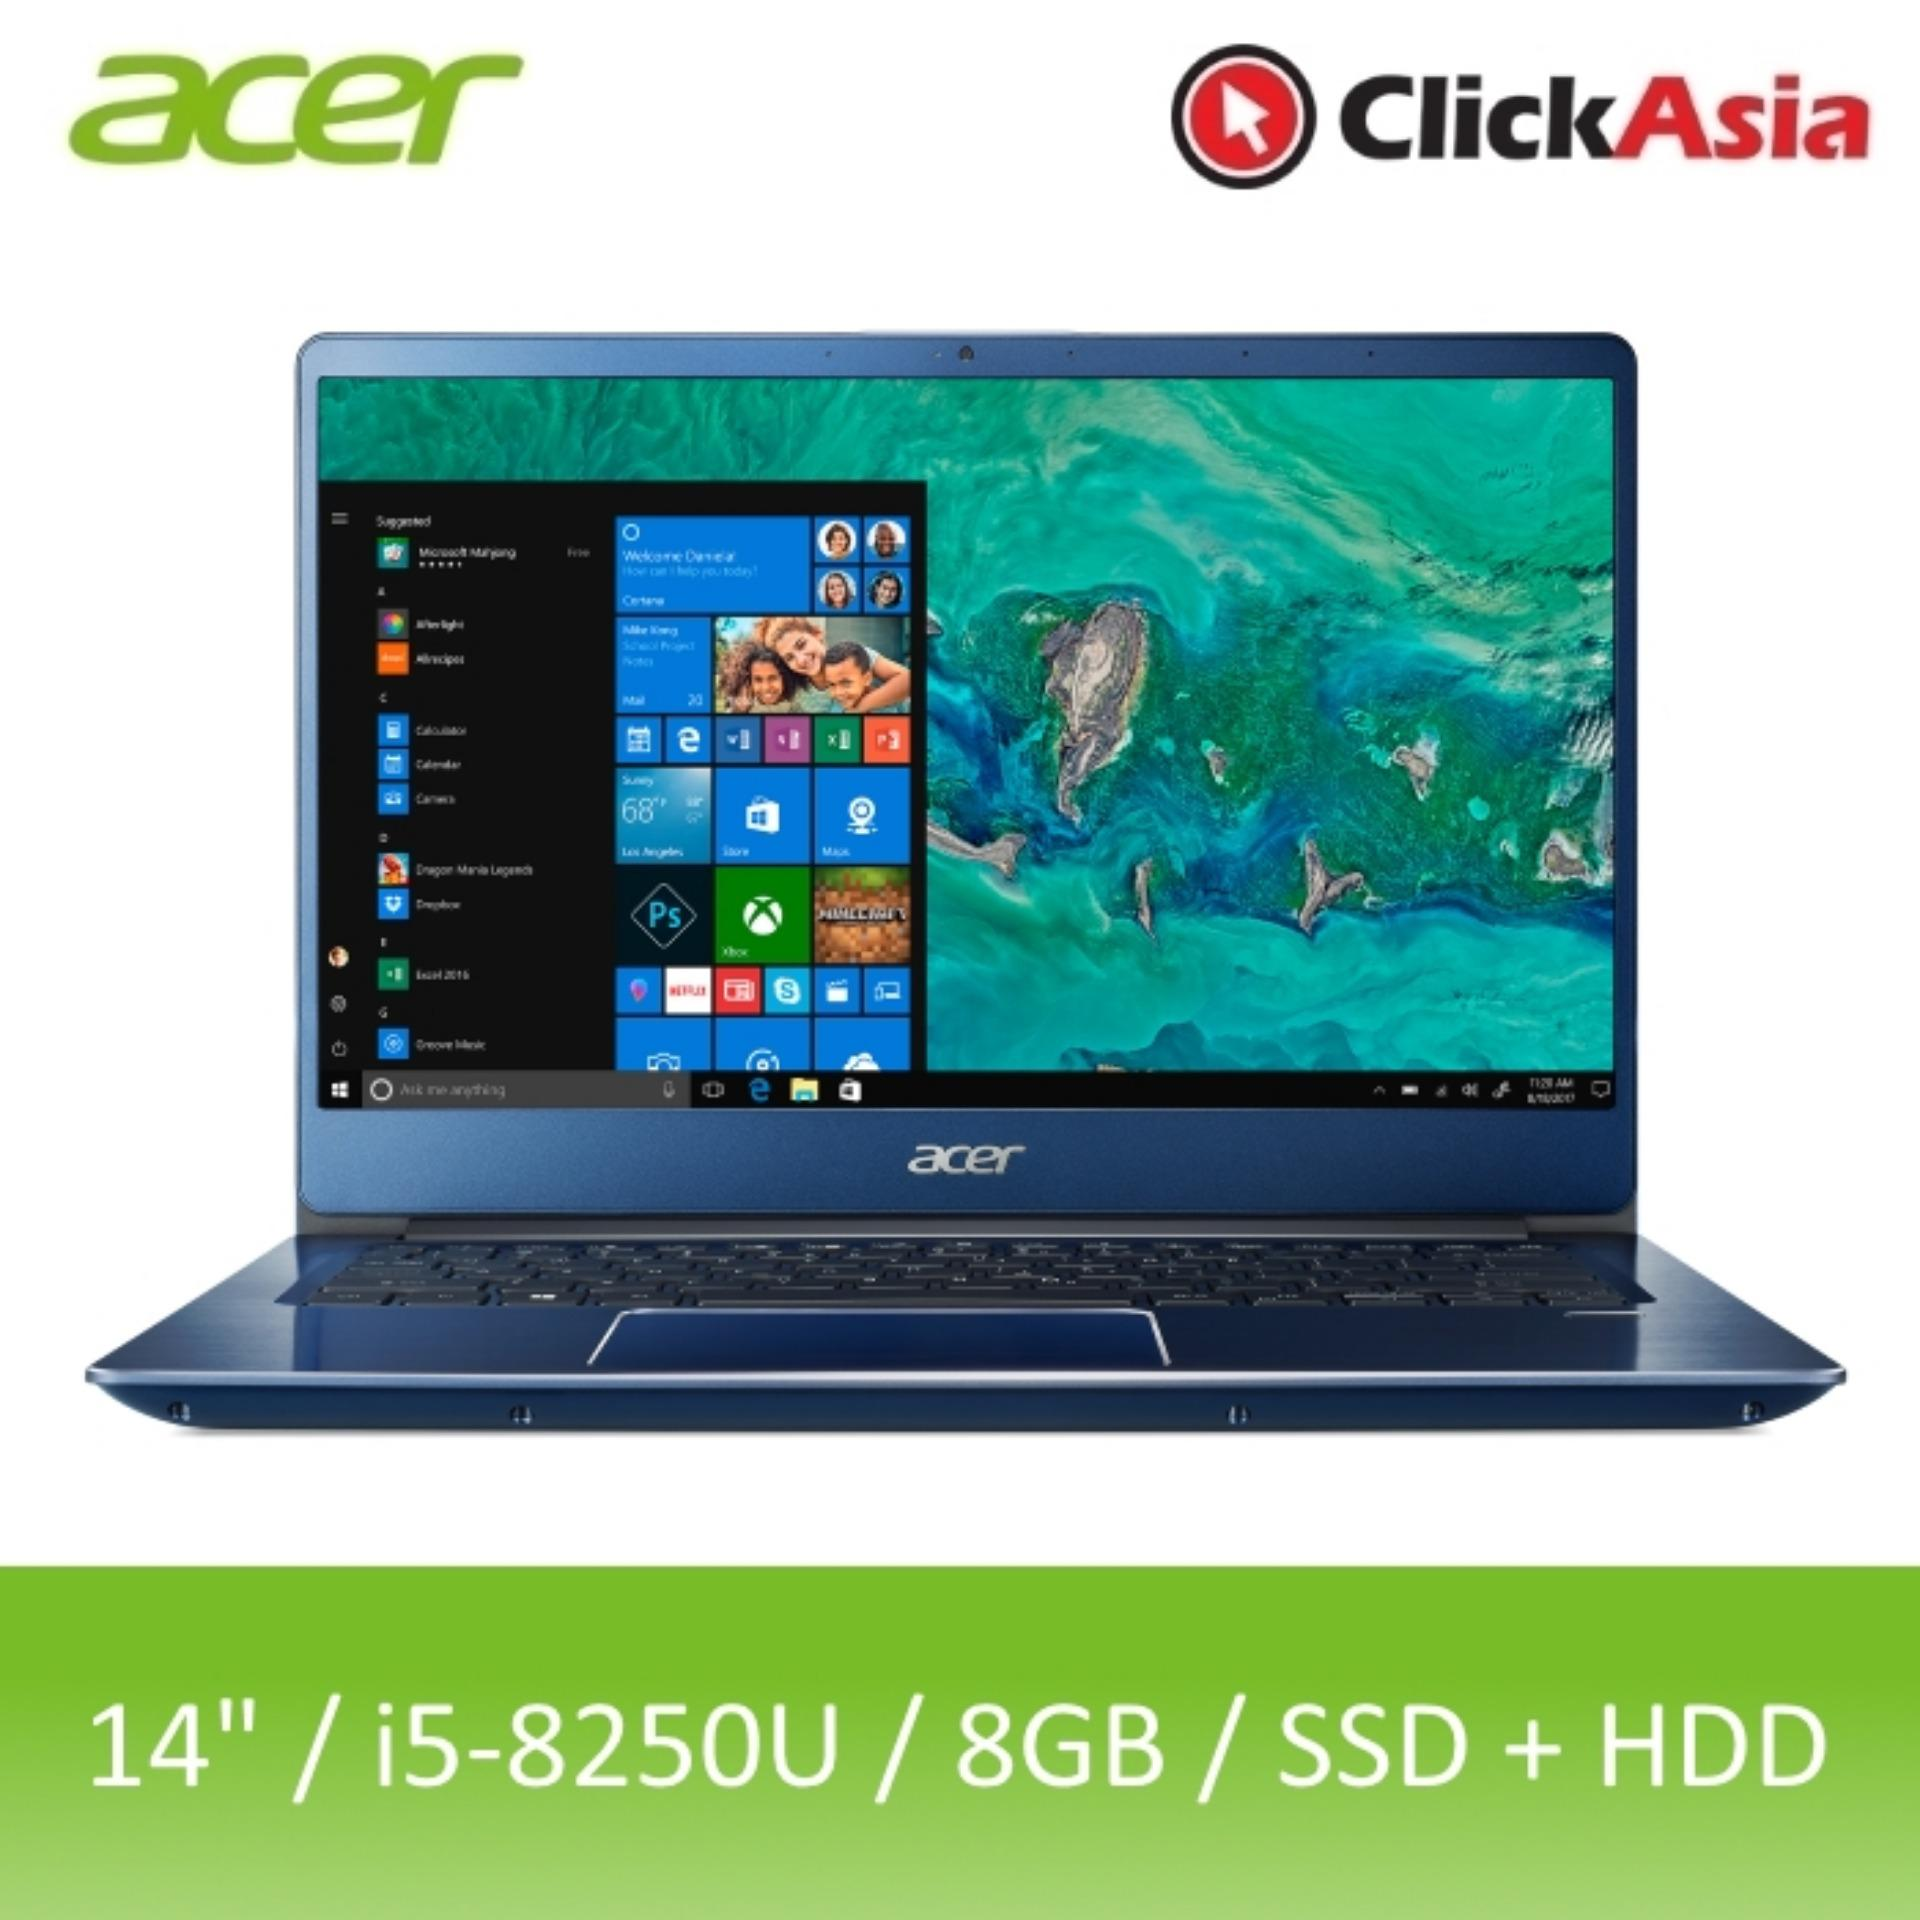 Acer Swift 3 (SF314-54G-5281) - 14 FHD/i5-8250U/2*4GB DDR4/128GB SSD+1TB HDD/Nvidia MX150/W10 (Blue)